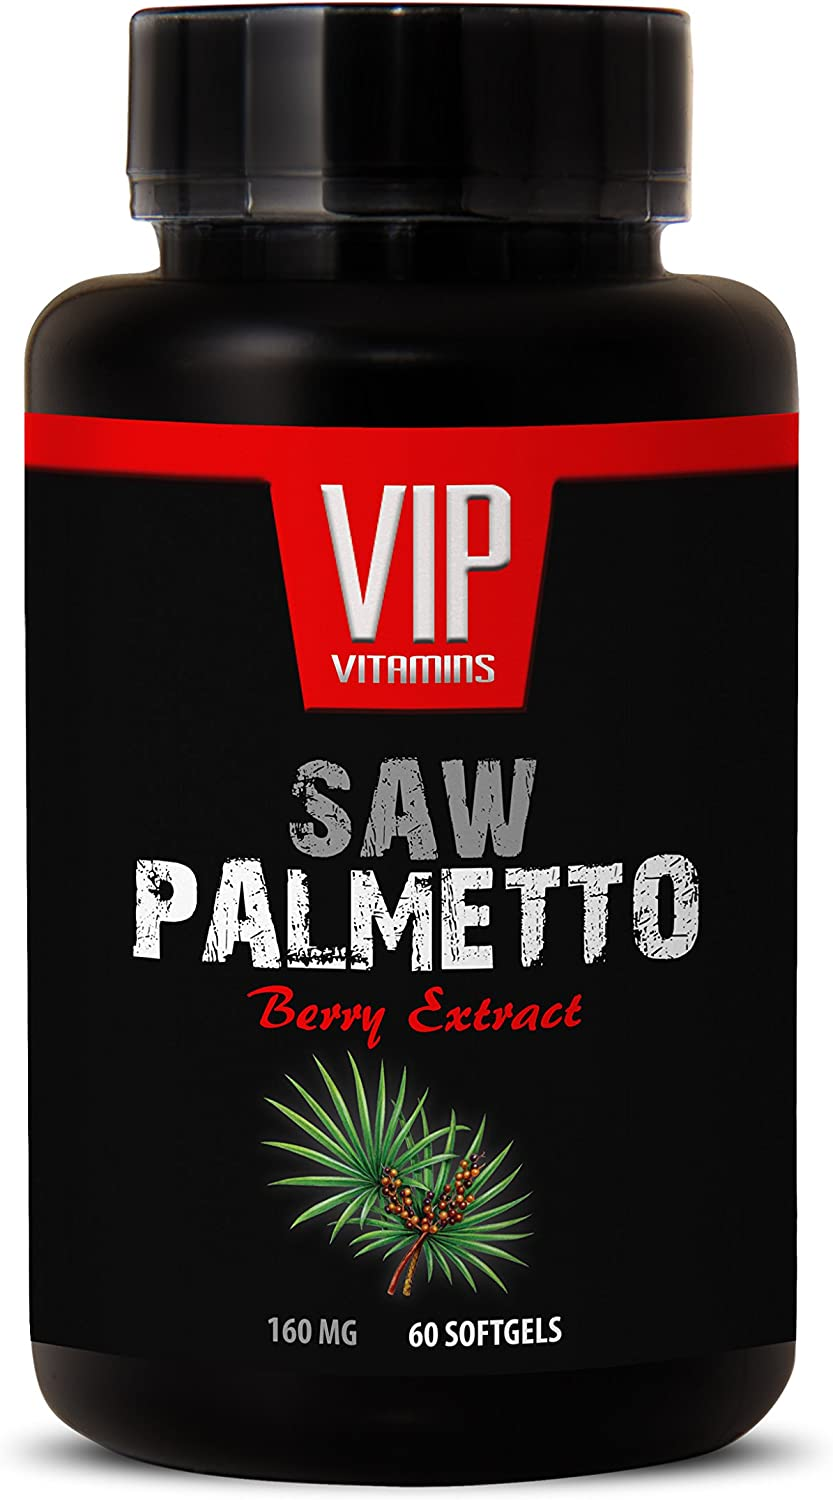 Prostate Max 56% OFF Supplements - Saw Palmetto P Berry 160 MG Extract All items free shipping